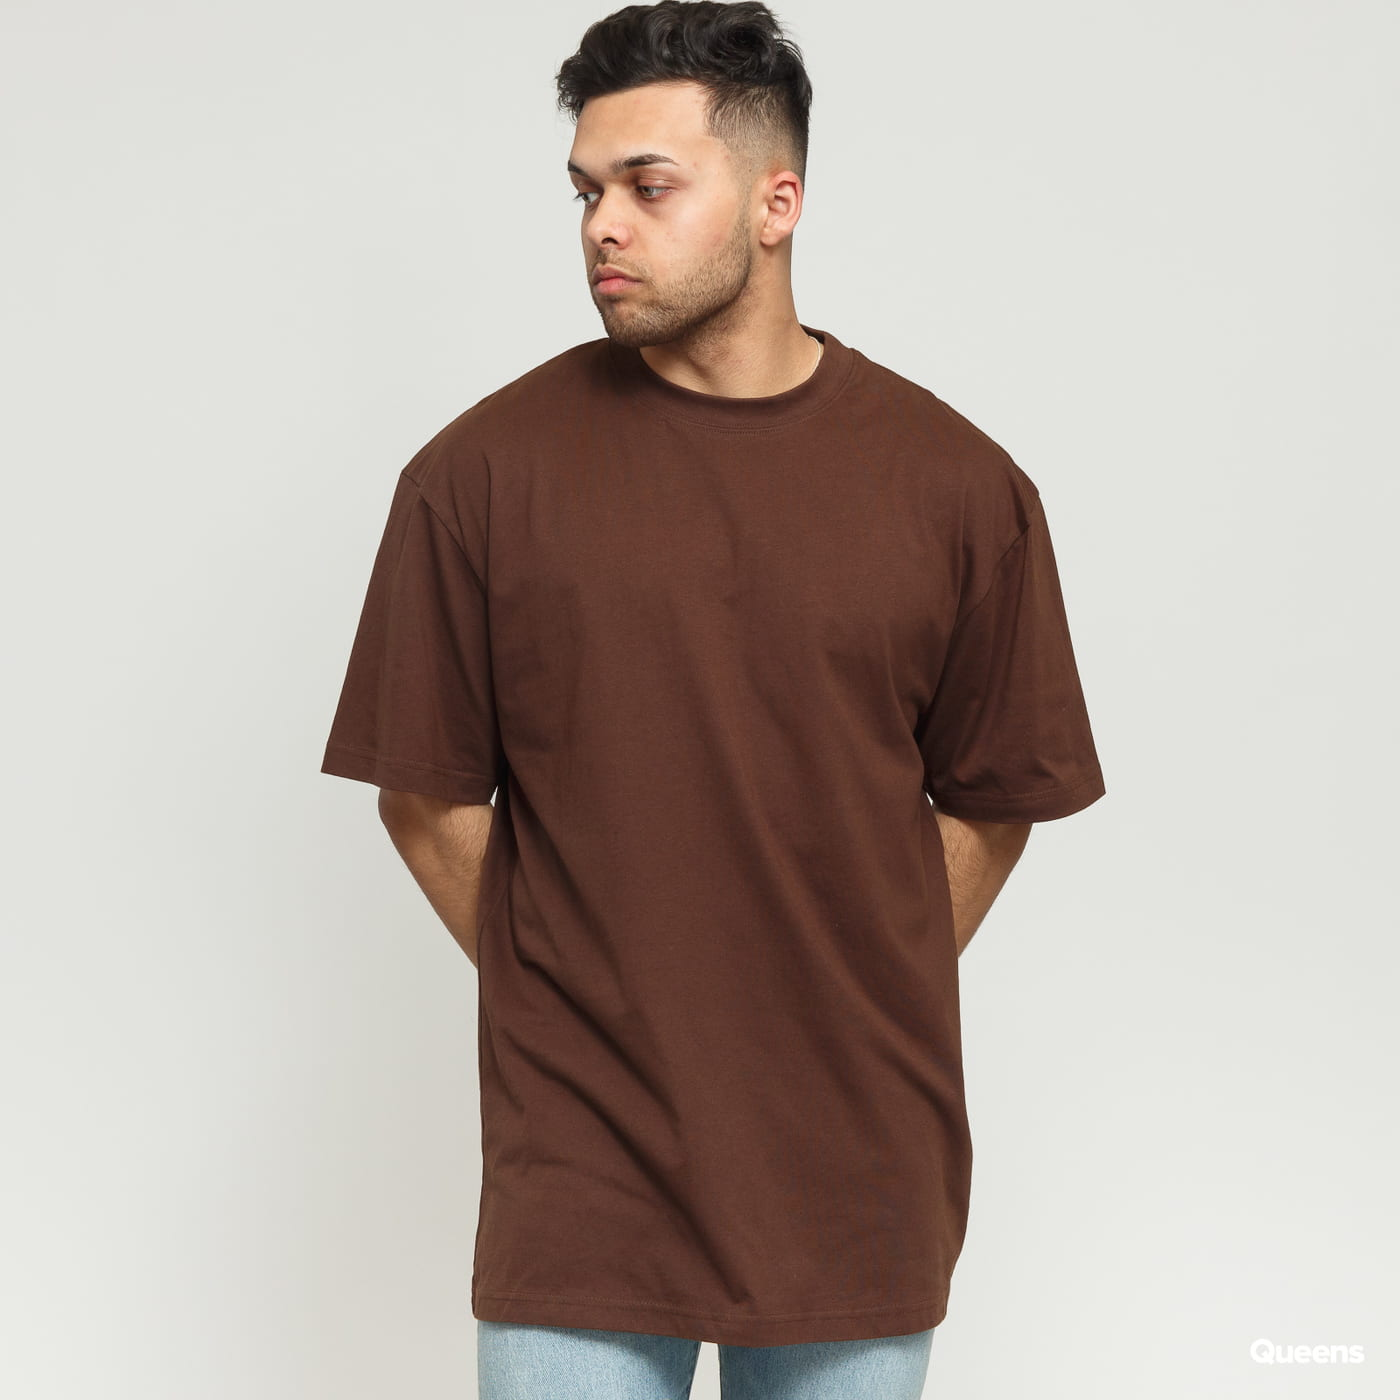 Urban Classics Tall Tee brown